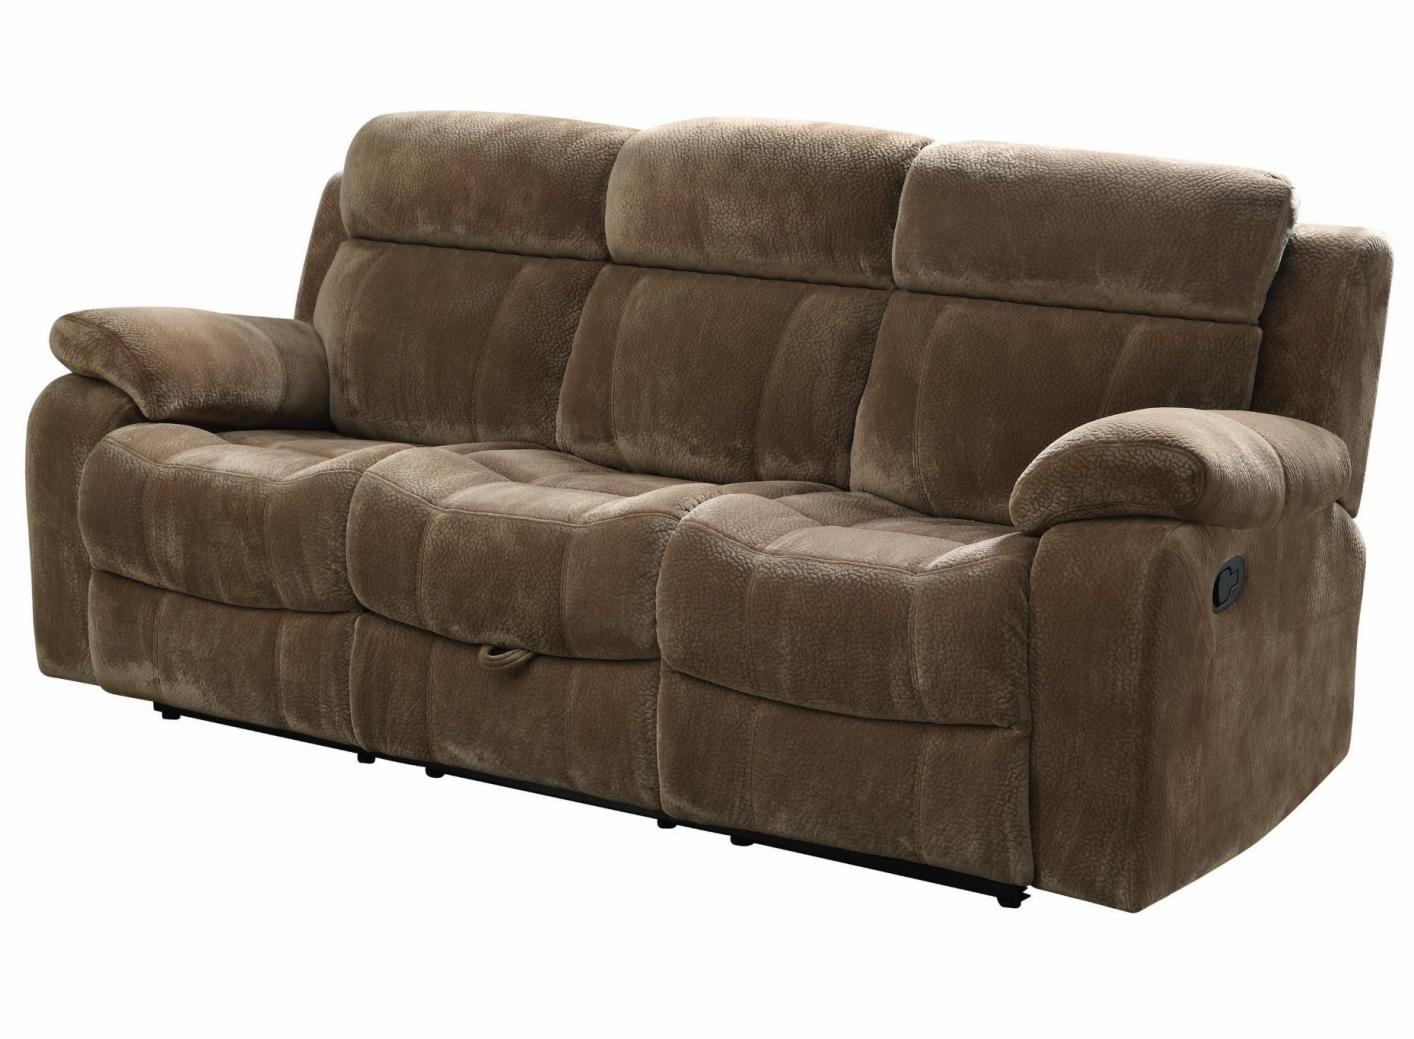 Fabric Reclining Sofas Epic Fabric Reclining Sofa 34 With Additional Sofas And Couches Thesofa